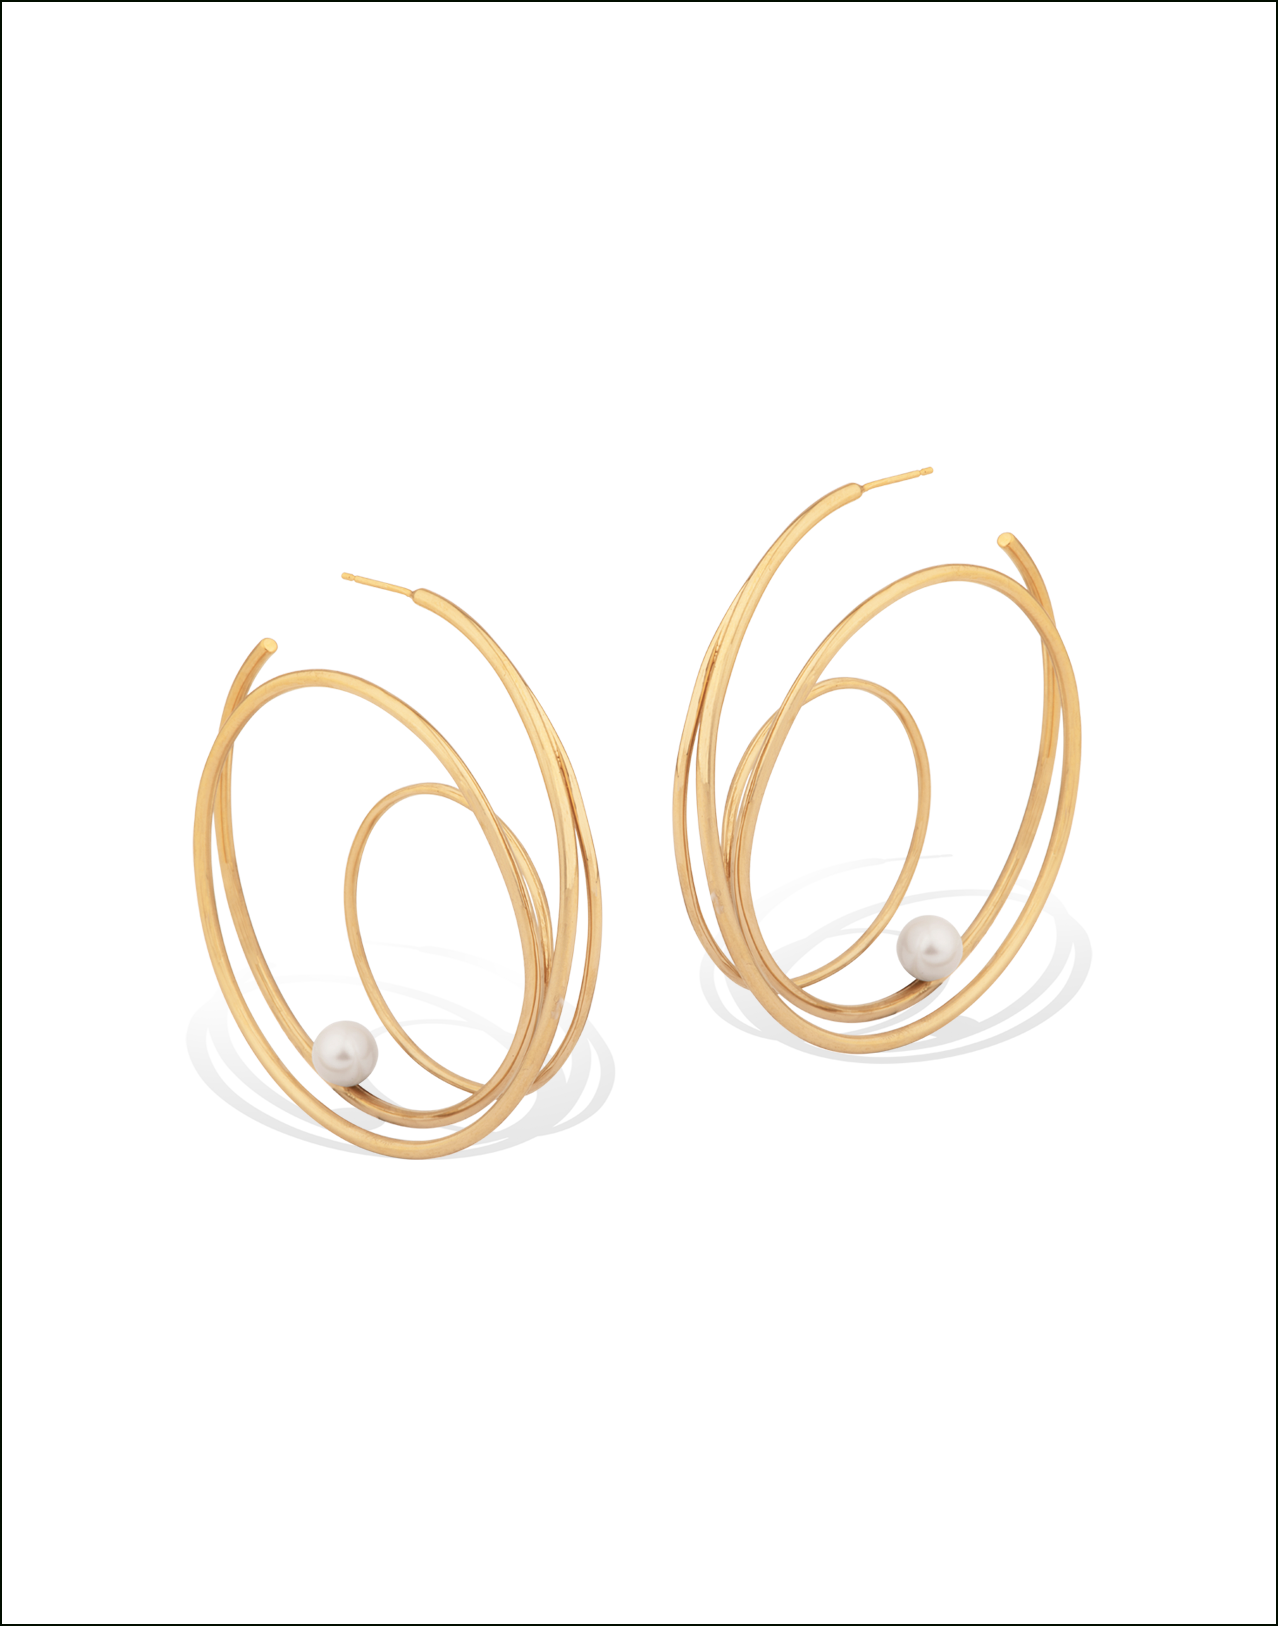 Completedworks-Earrings-Gold-Vermeil-The-Laws-of-Gravity-1-1.png